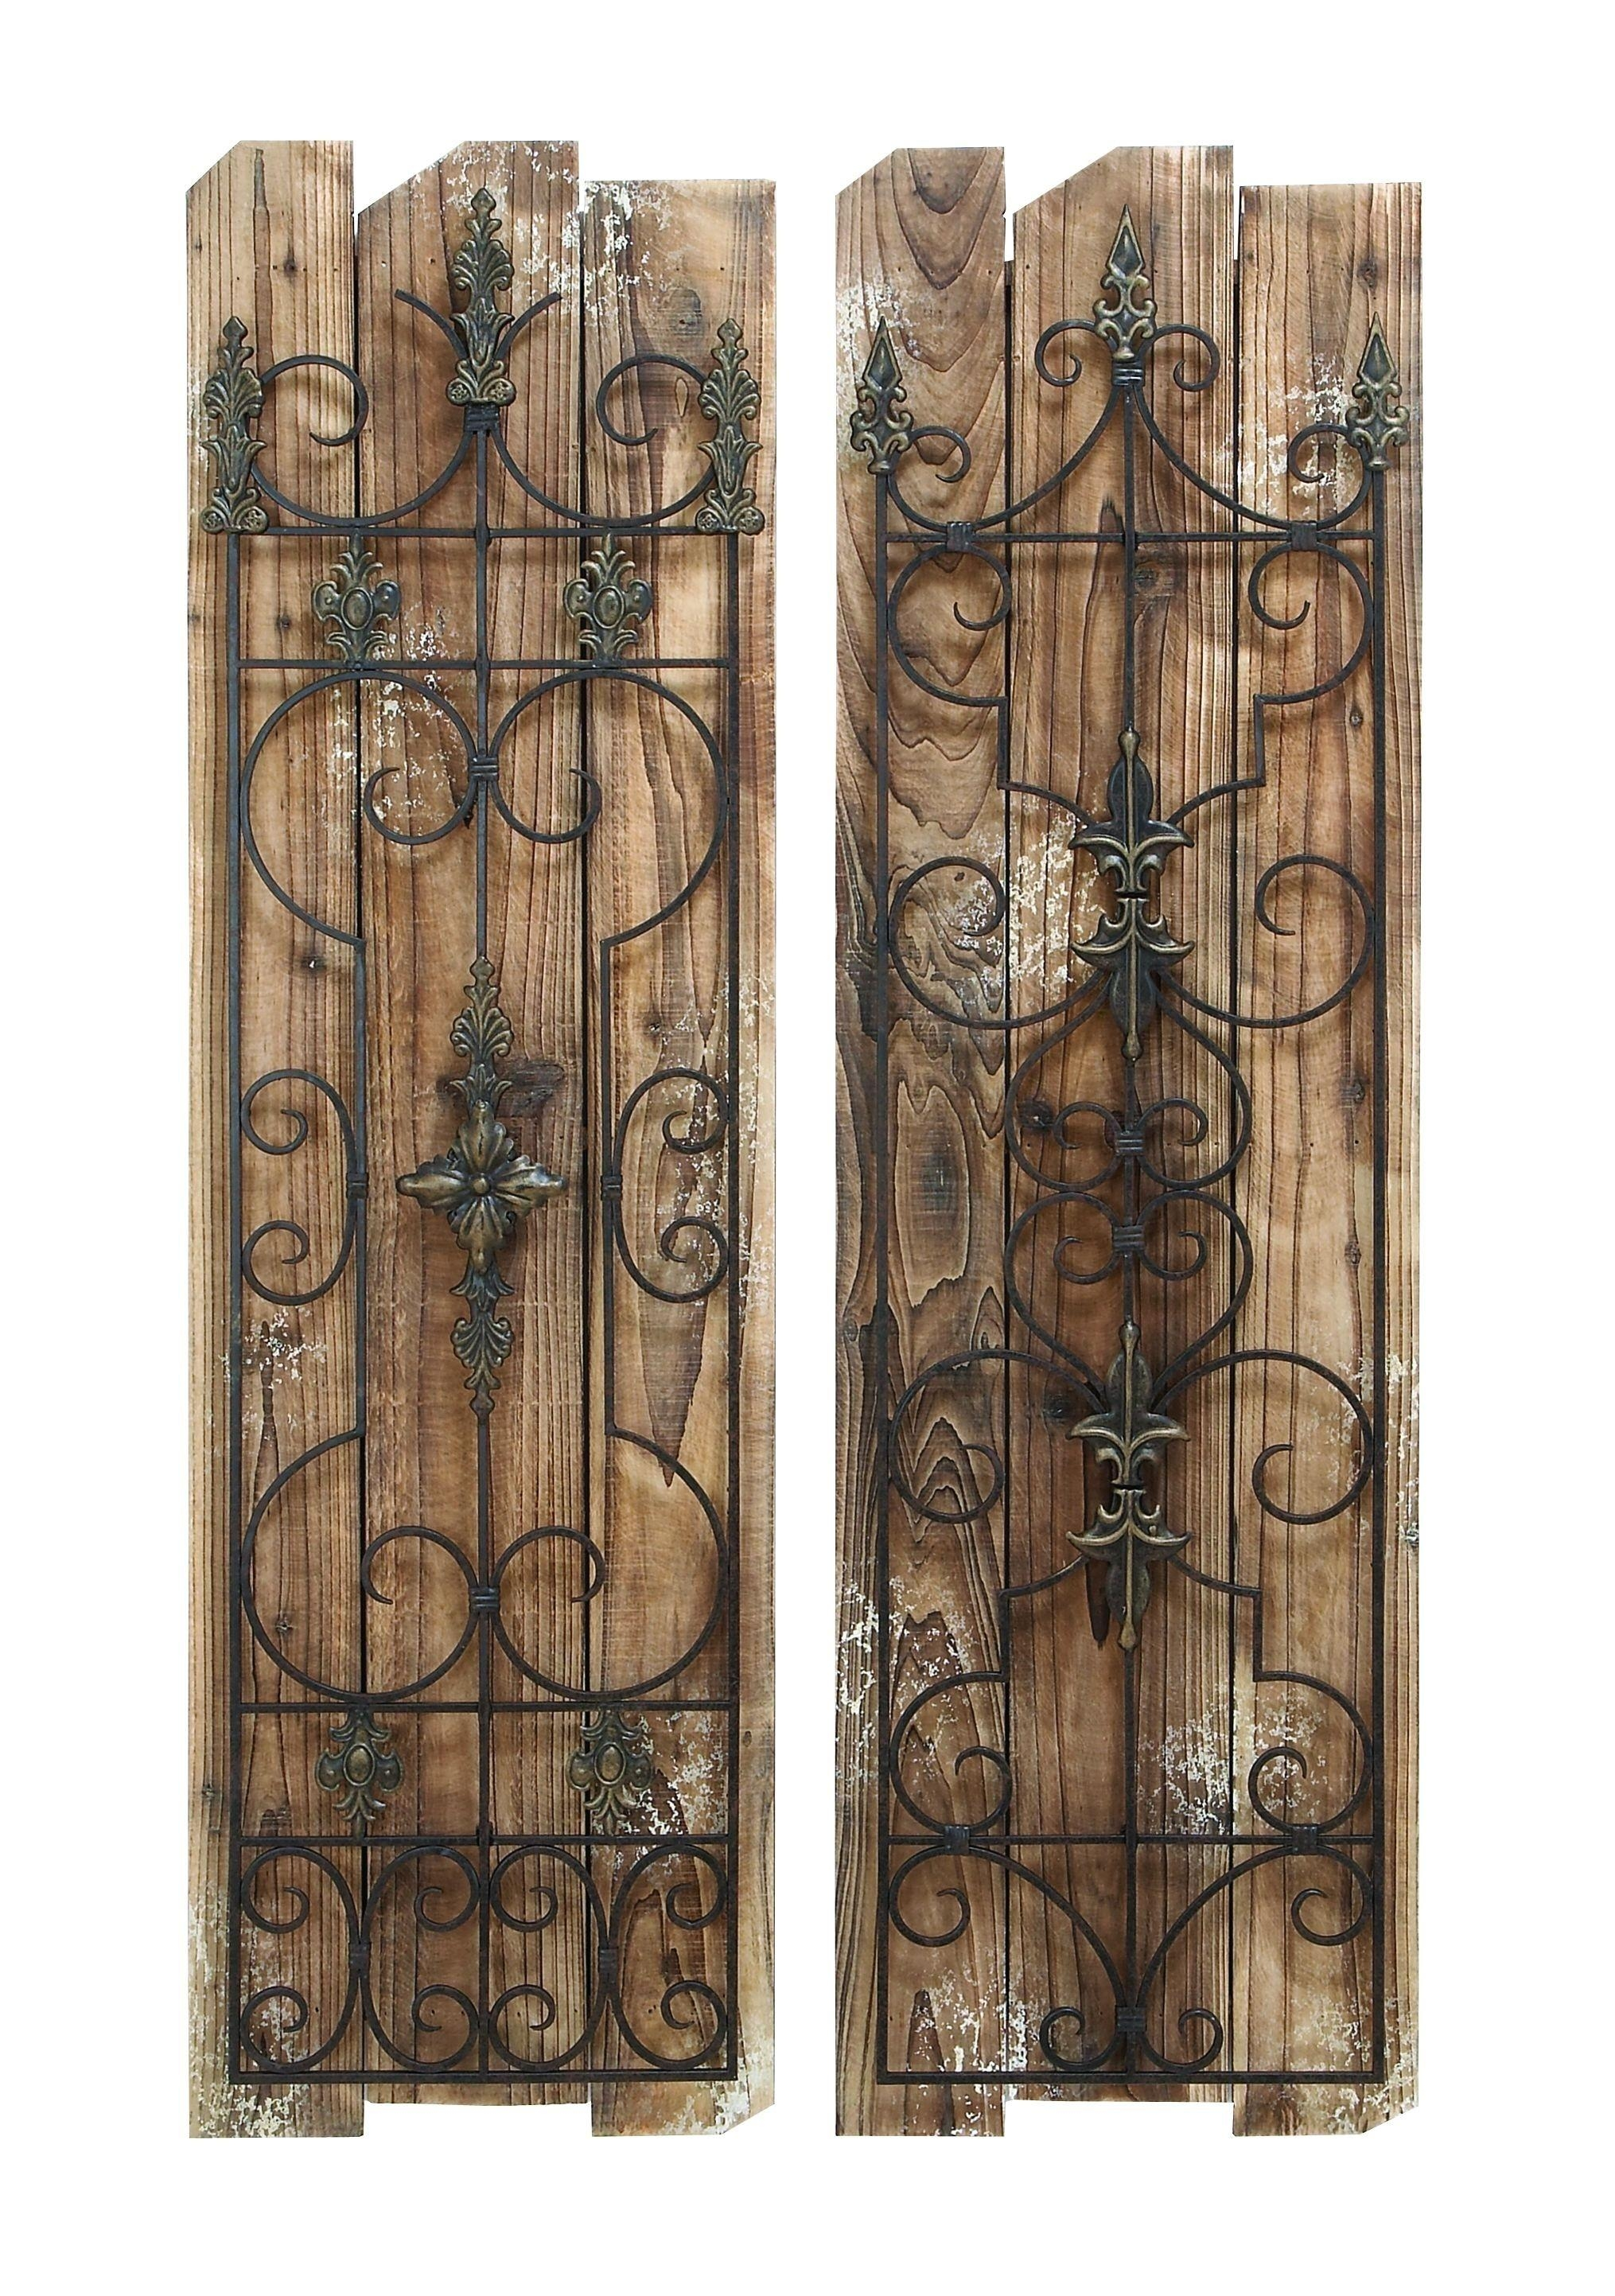 Home Design : Rustic Wood And Metal Wall Art Beach Style Expansive Throughout Inexpensive Metal Wall Art (View 15 of 20)